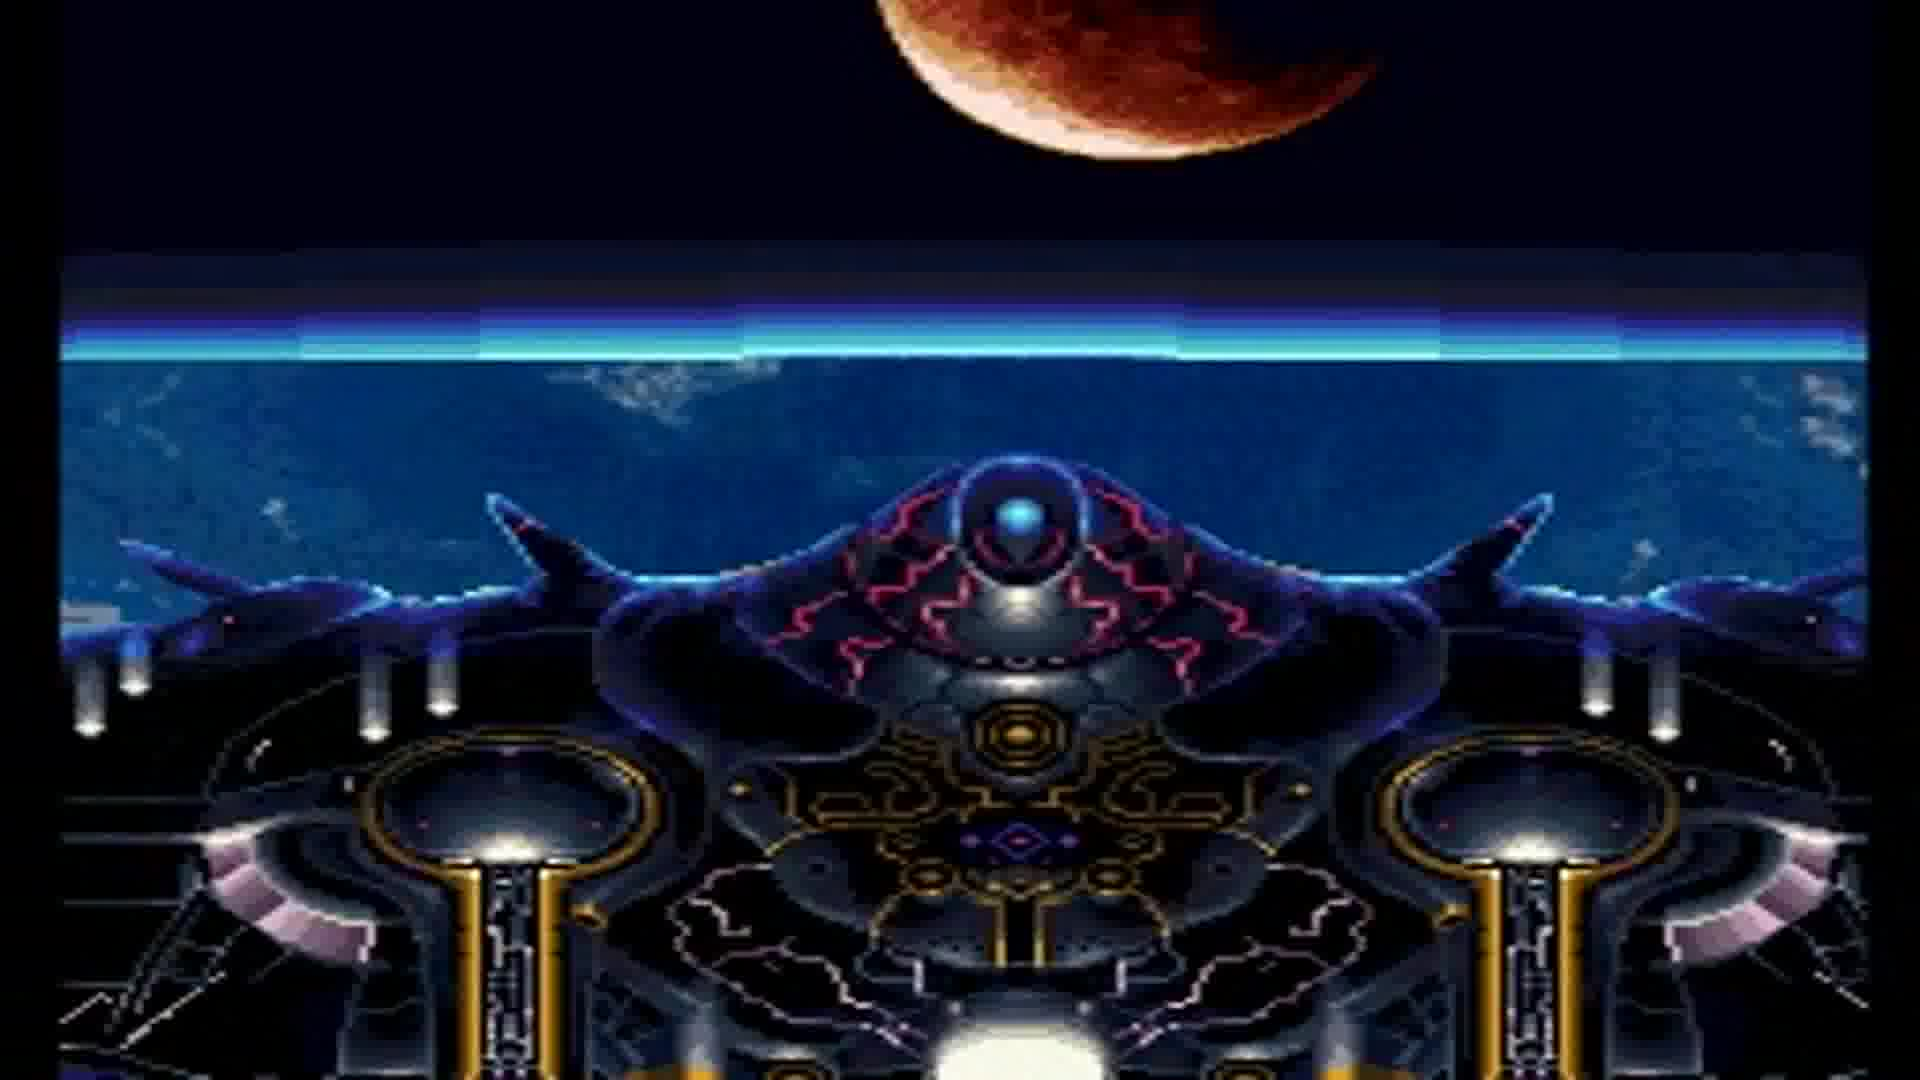 chrono trigger super nintendo intro 05